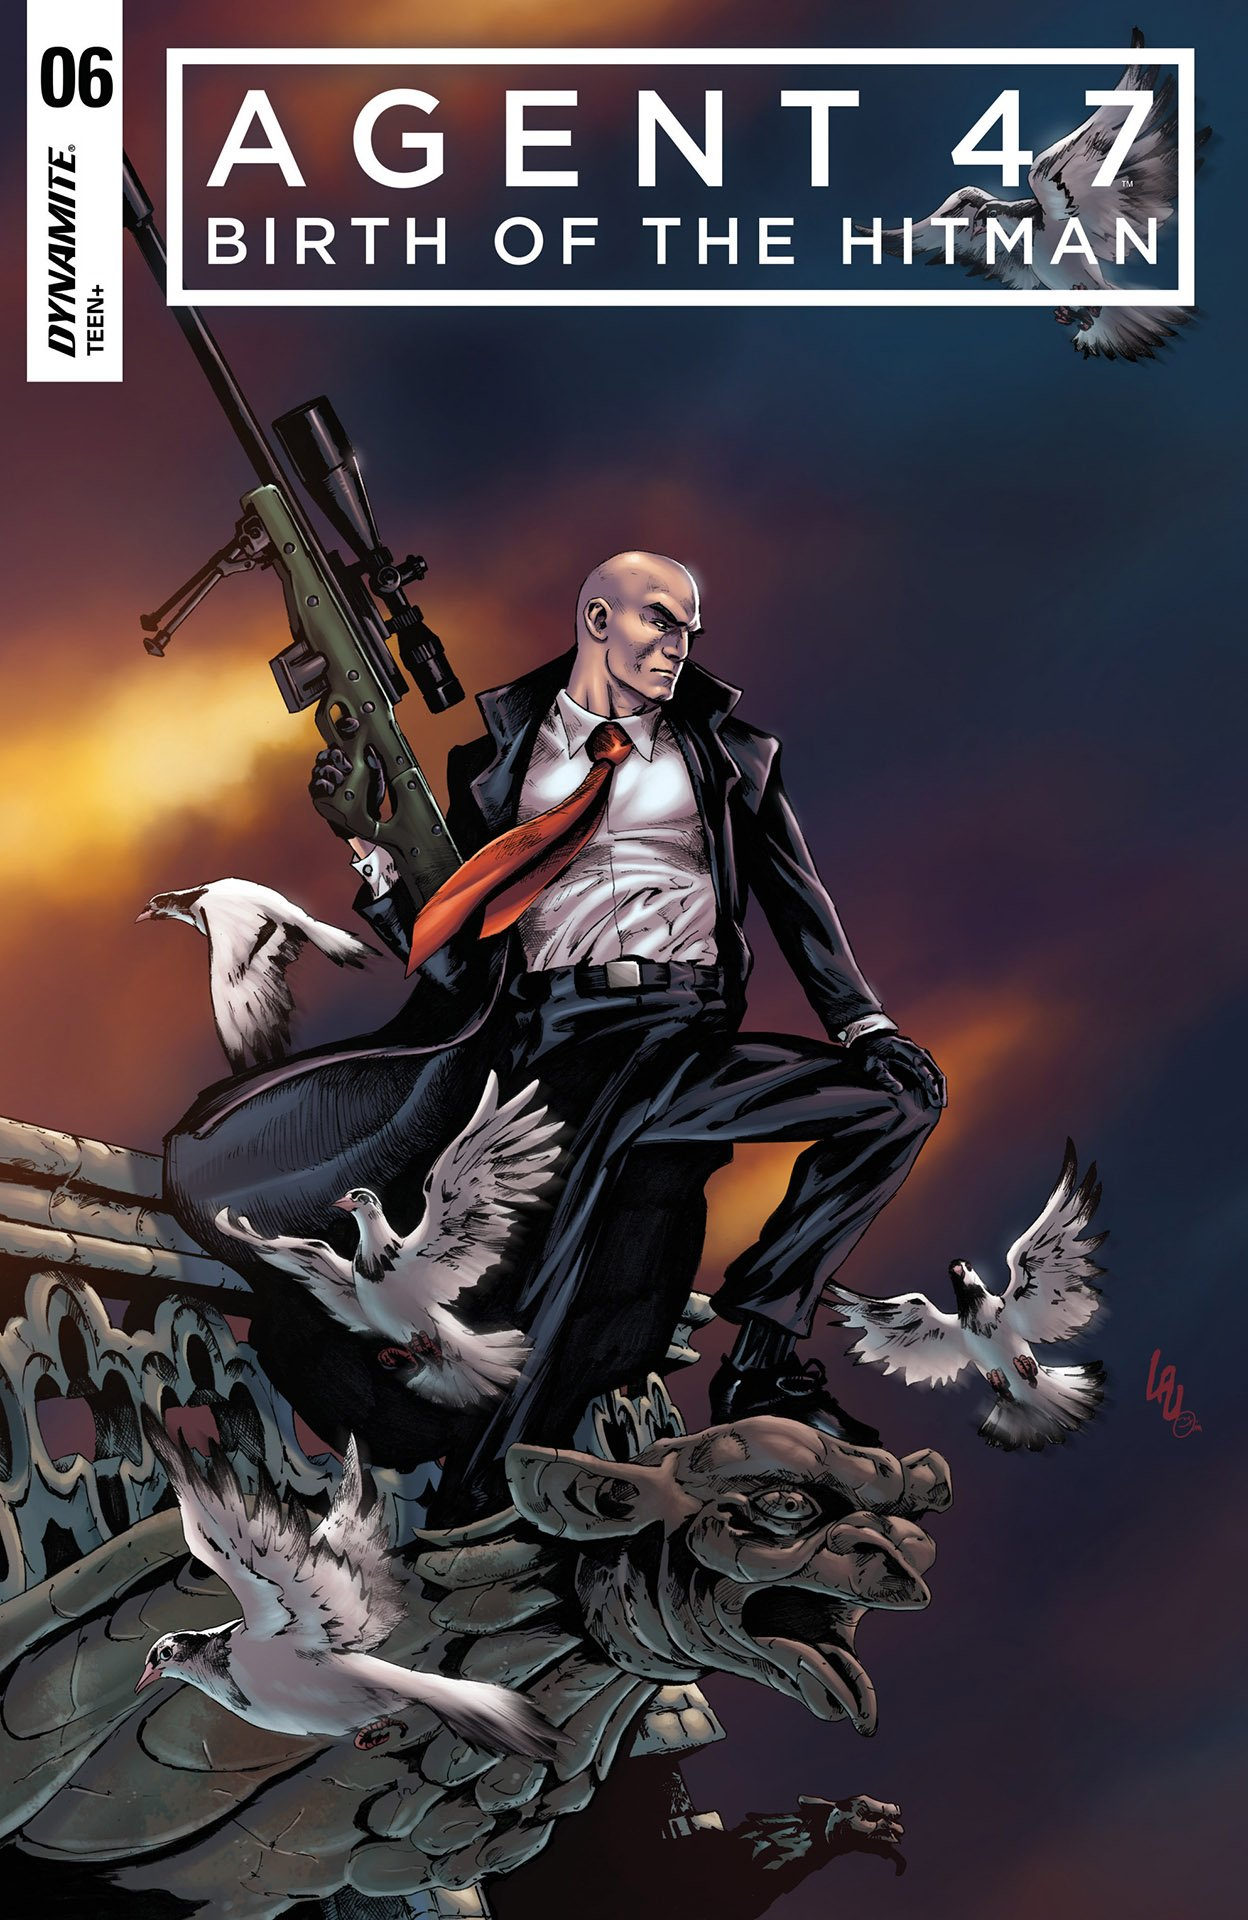 Agent 47 - Birth Of The Hitman 006 (2018) (cover a)